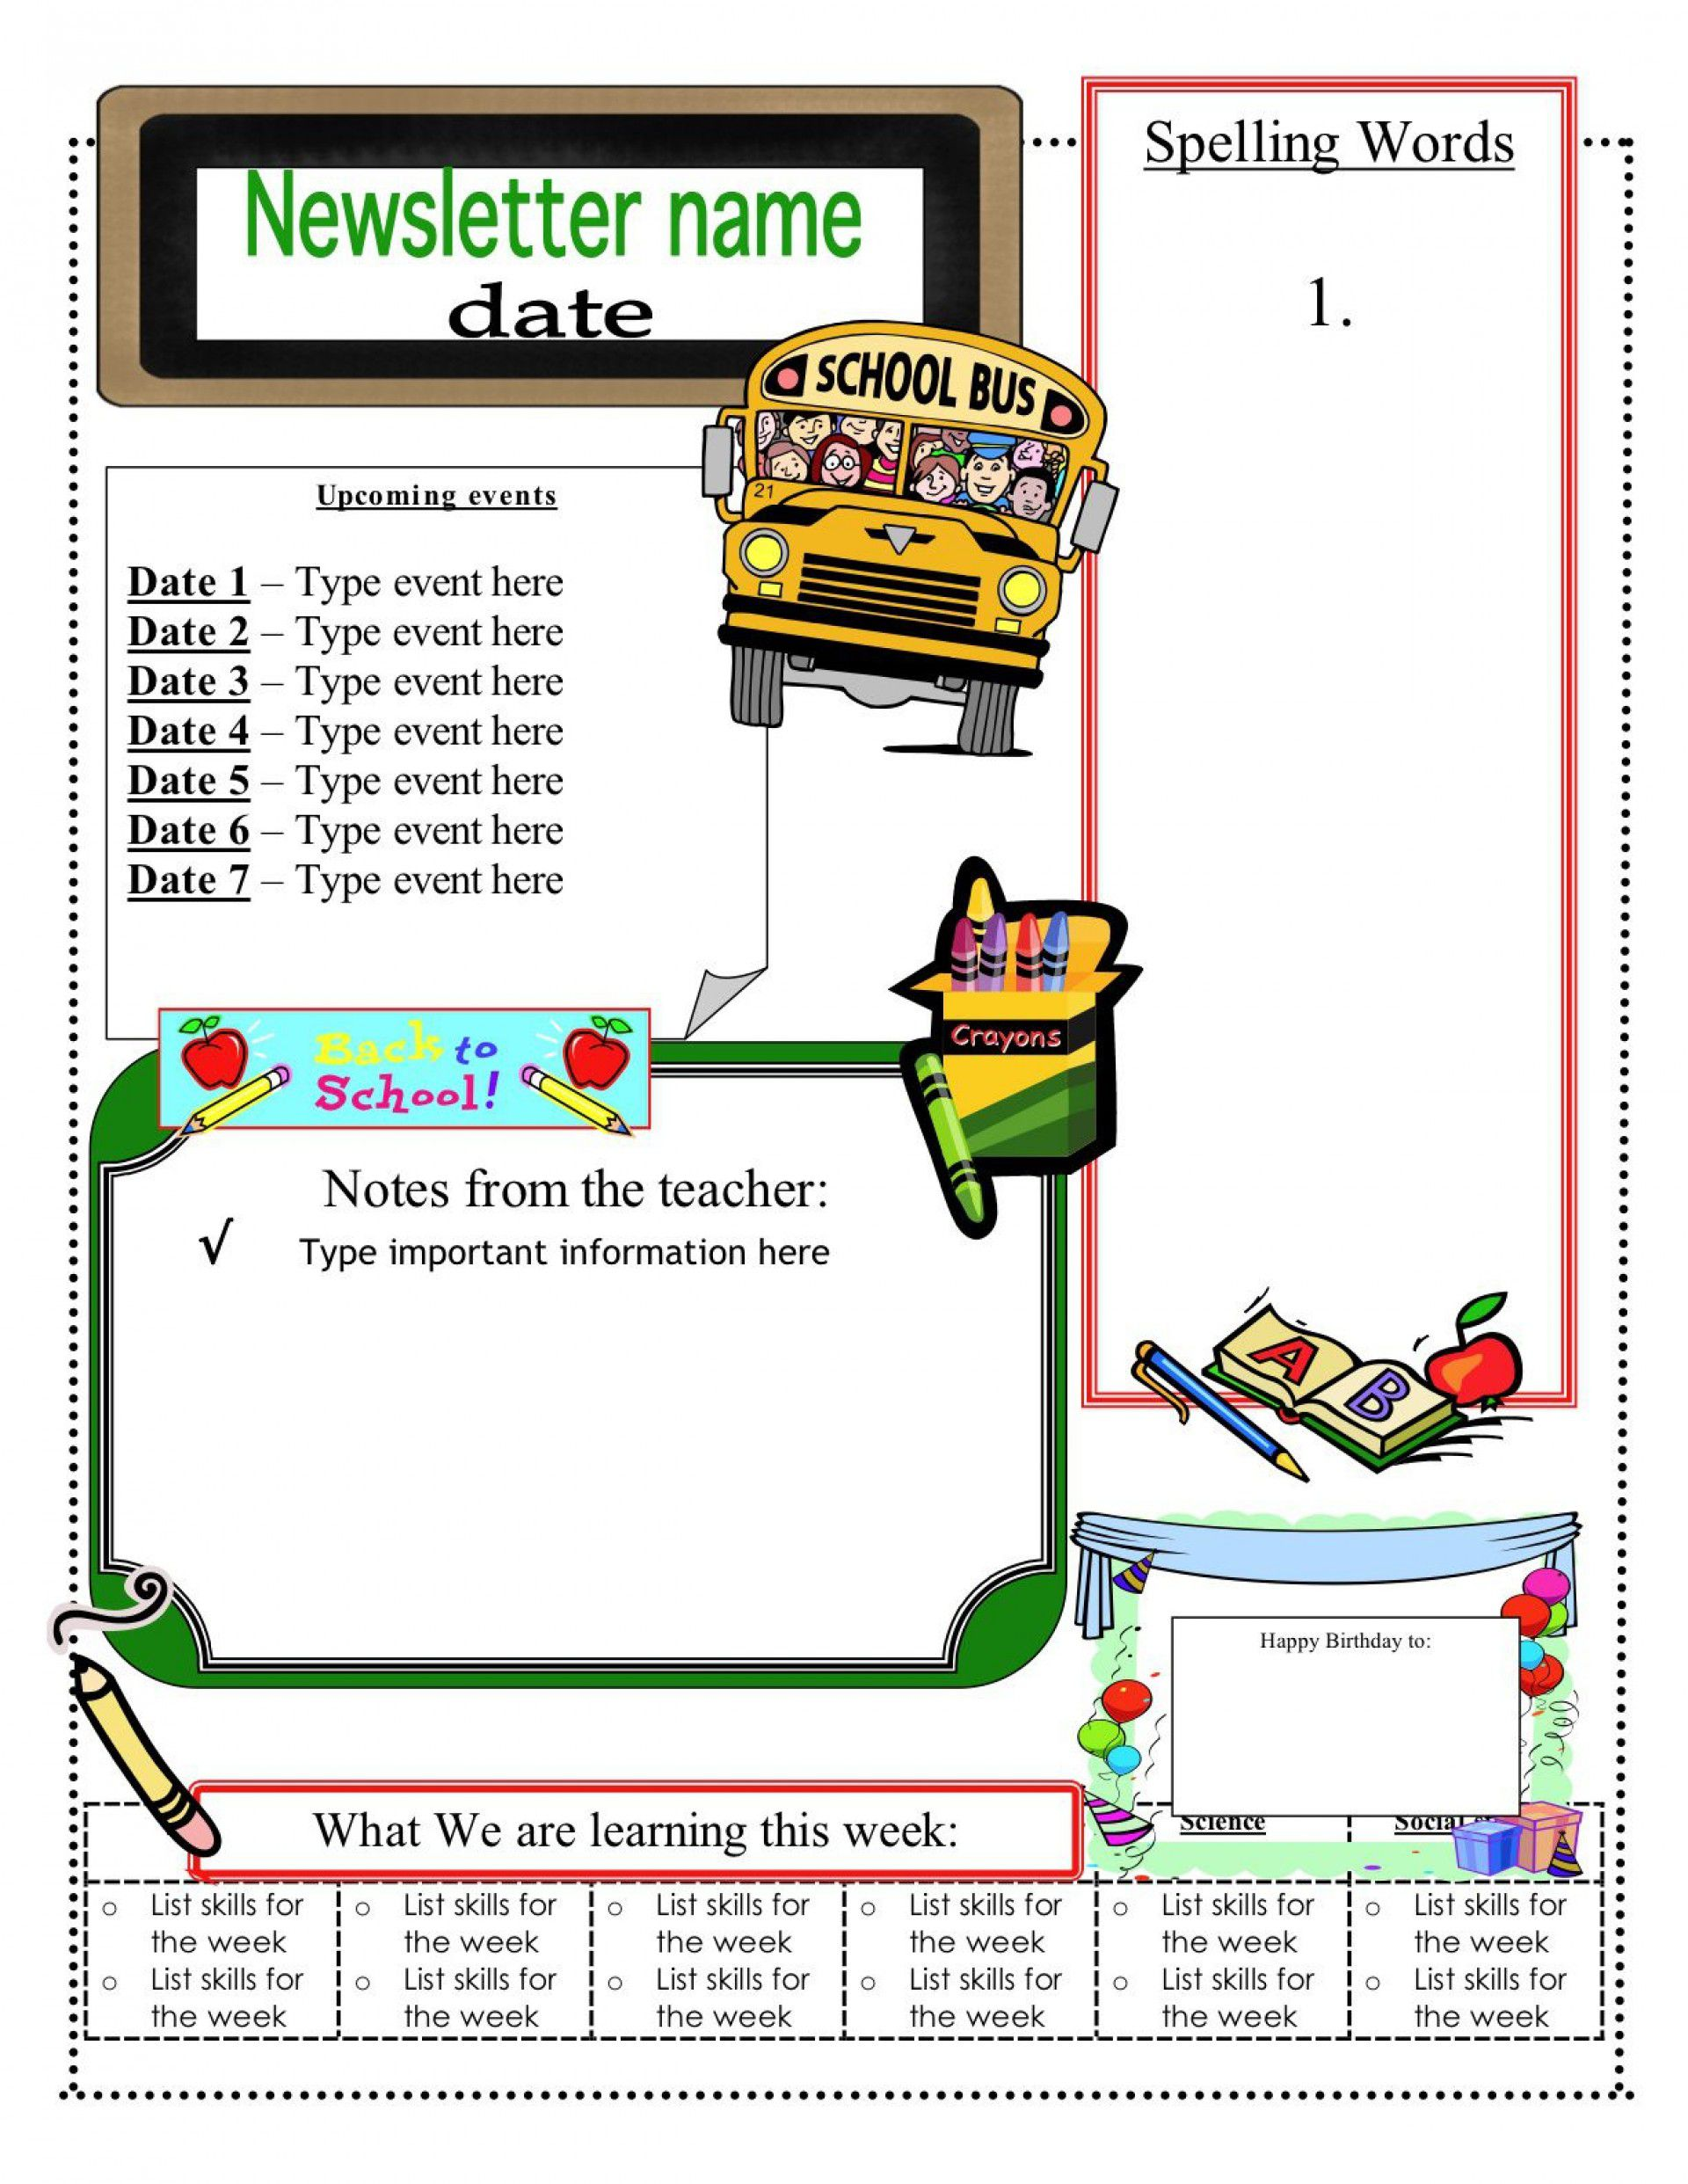 001 Stupendou School Newsletter Template Word Inspiration  Free Classroom For MicrosoftFull